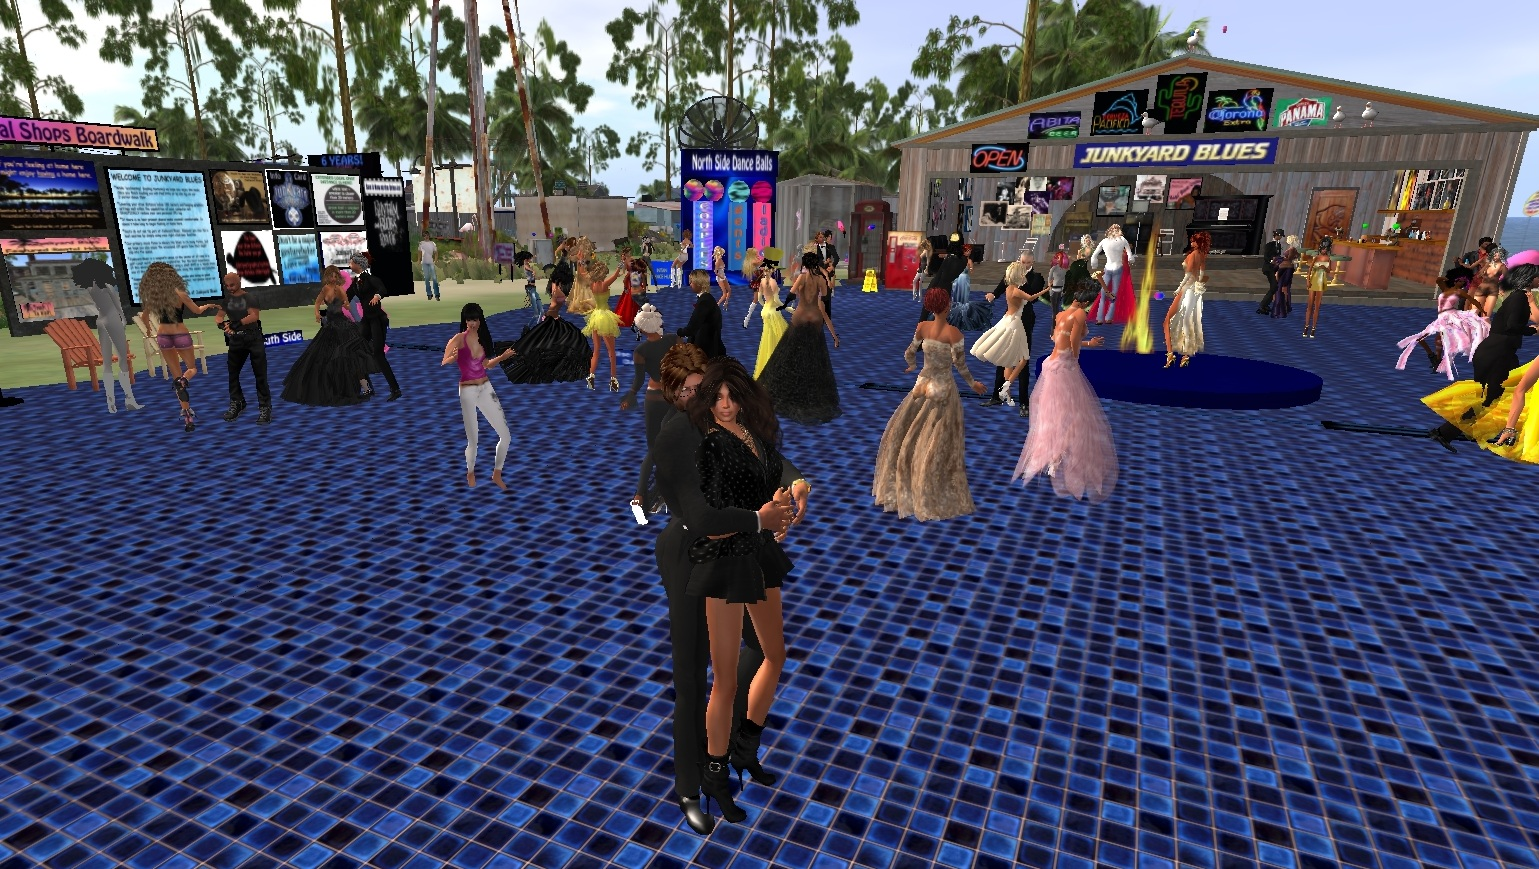 Yordie-Sands-Dance-Partner-@-Junkyard-Blues-Second-Life-2012